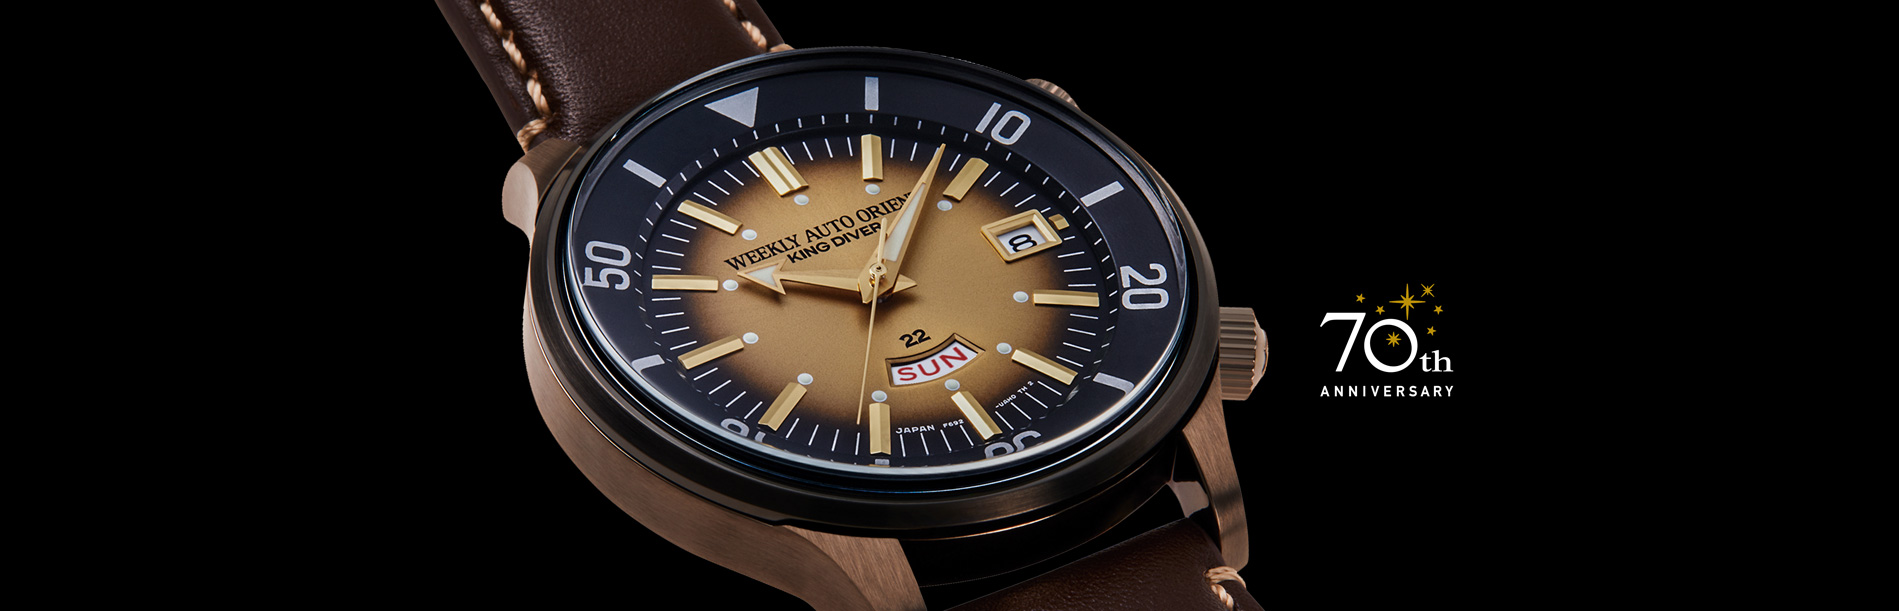 70 ANOS Weekly Auto Orient King Diver